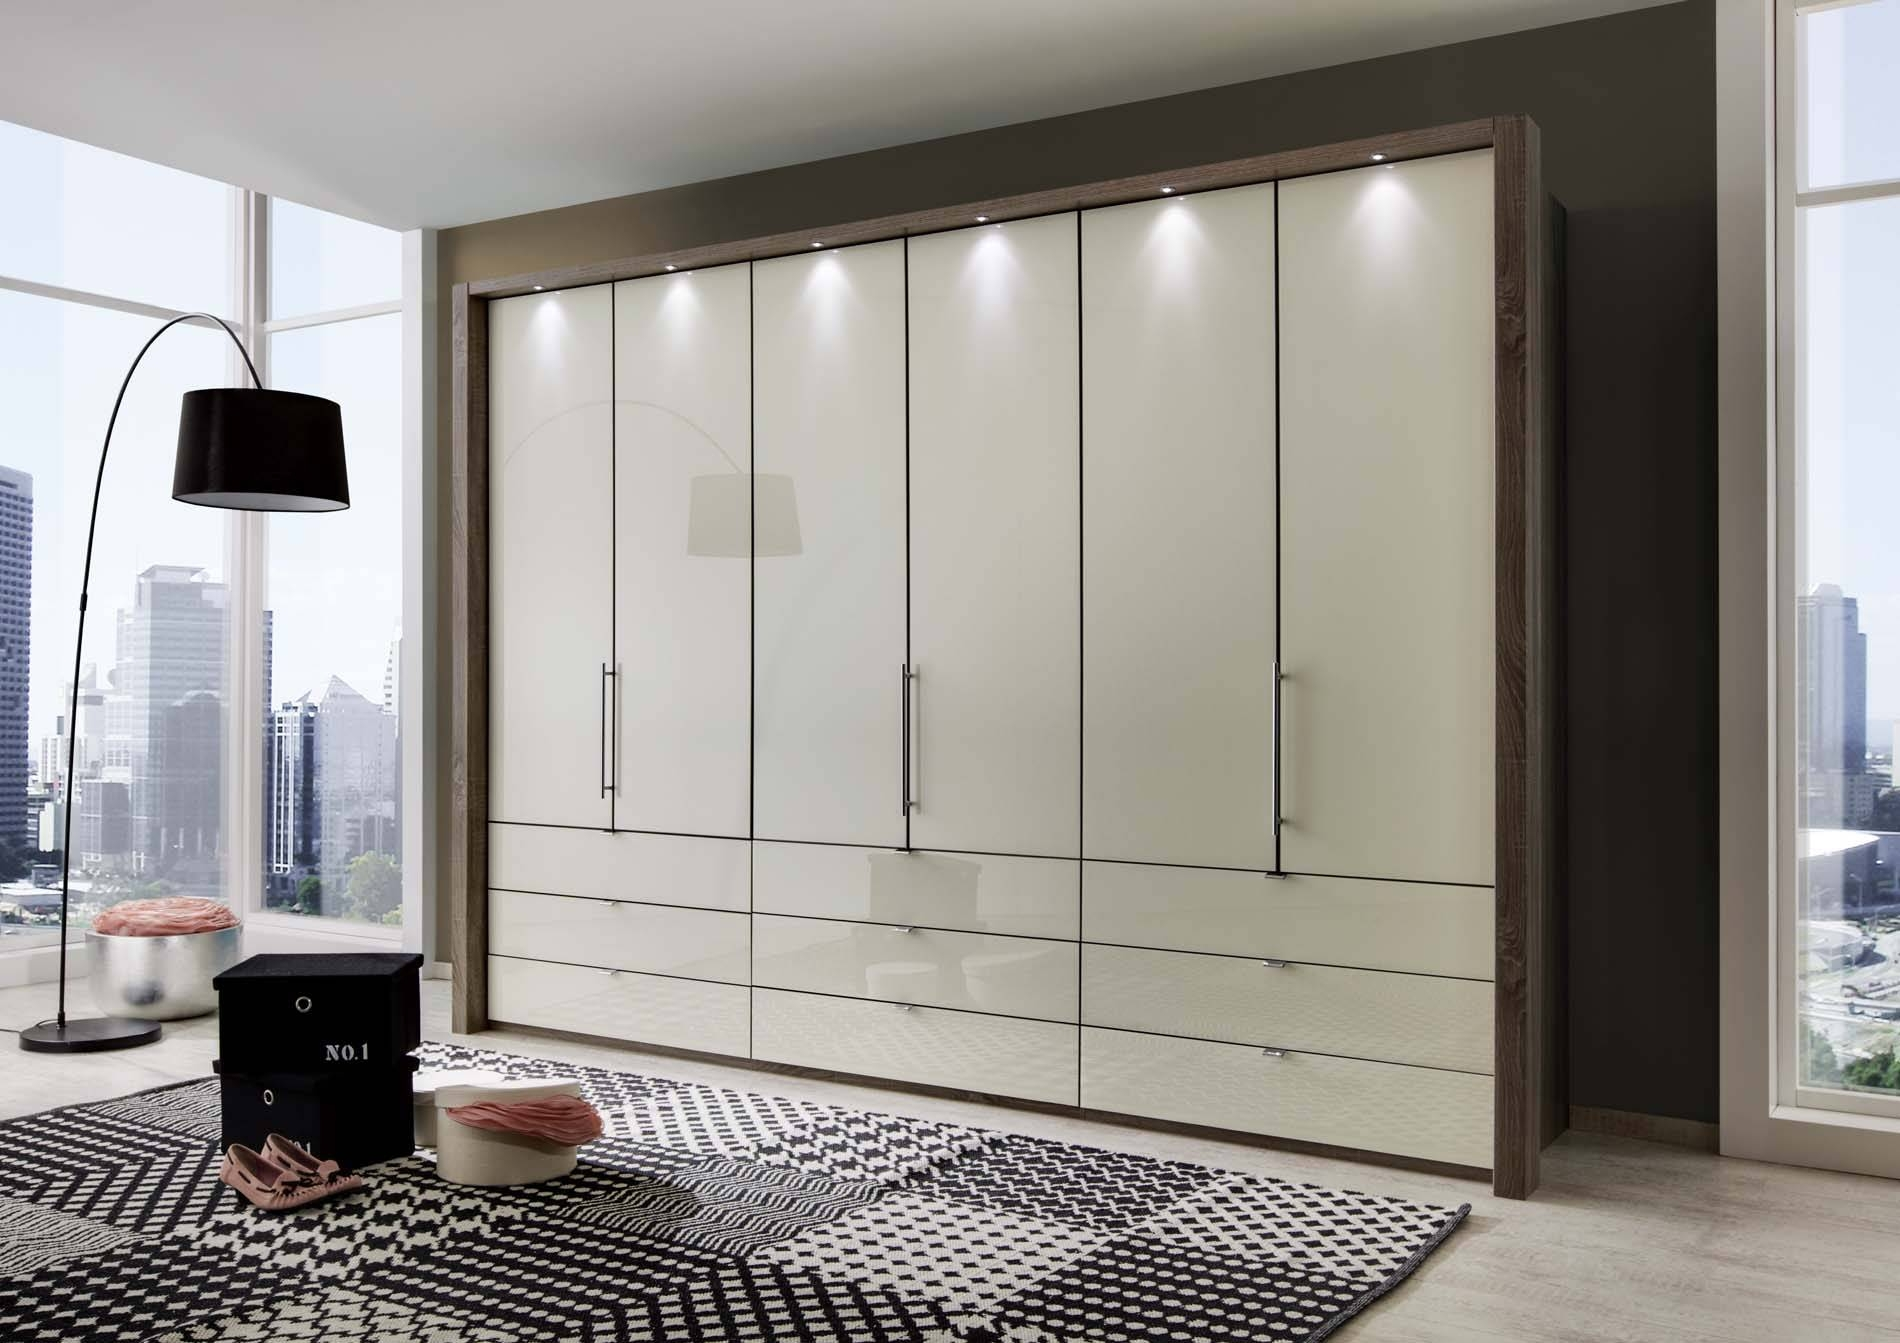 Kensington 6 Door 9 Drawer Wardrobe | Crendon Beds for Cheap Wardrobes and Chest of Drawers (Image 10 of 15)